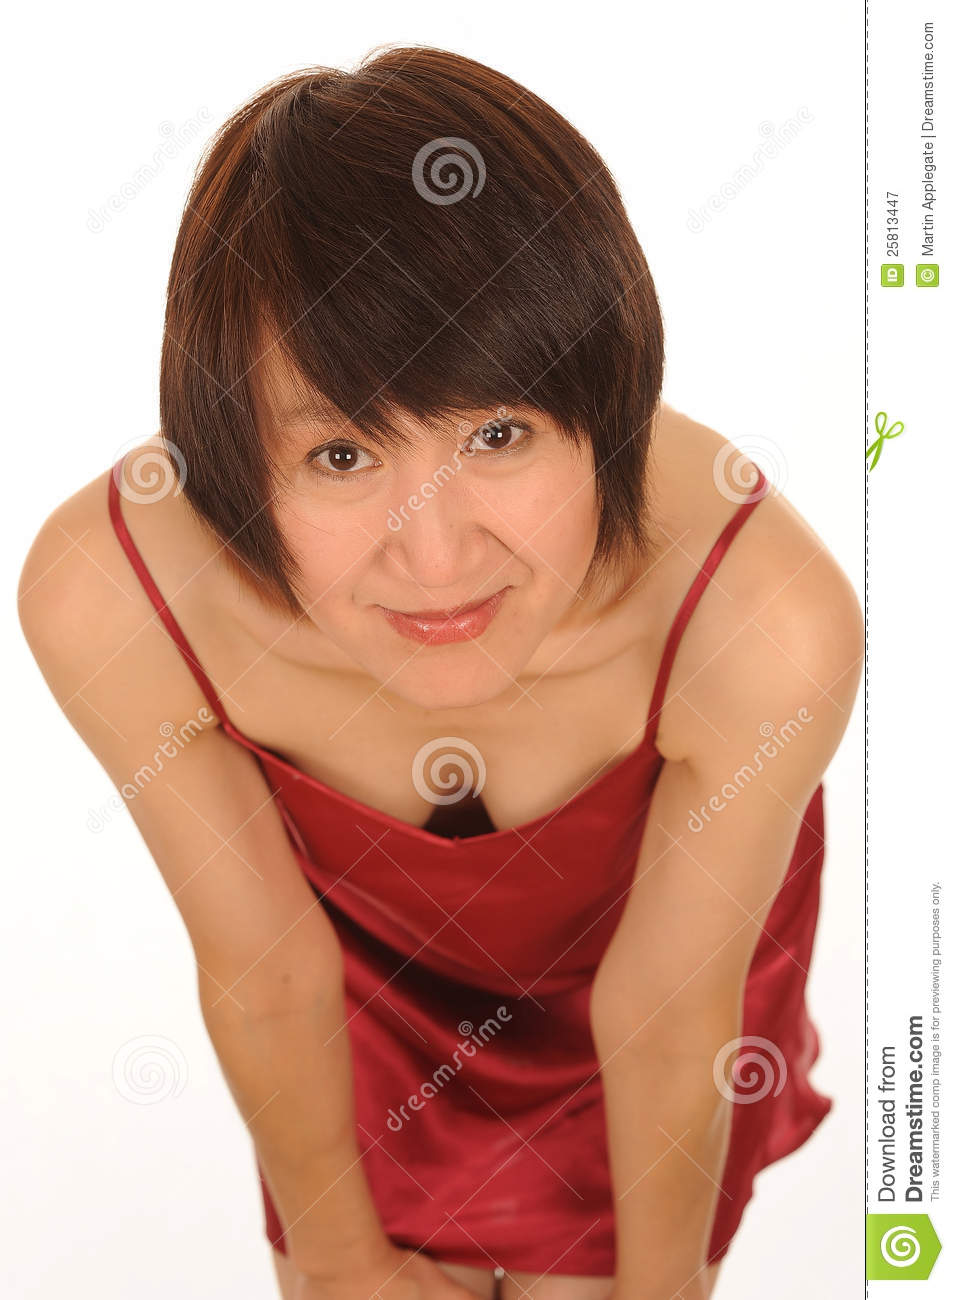 Asian Woman Bowing Stock Image Image Of Hands, Brown - 25813447-8200